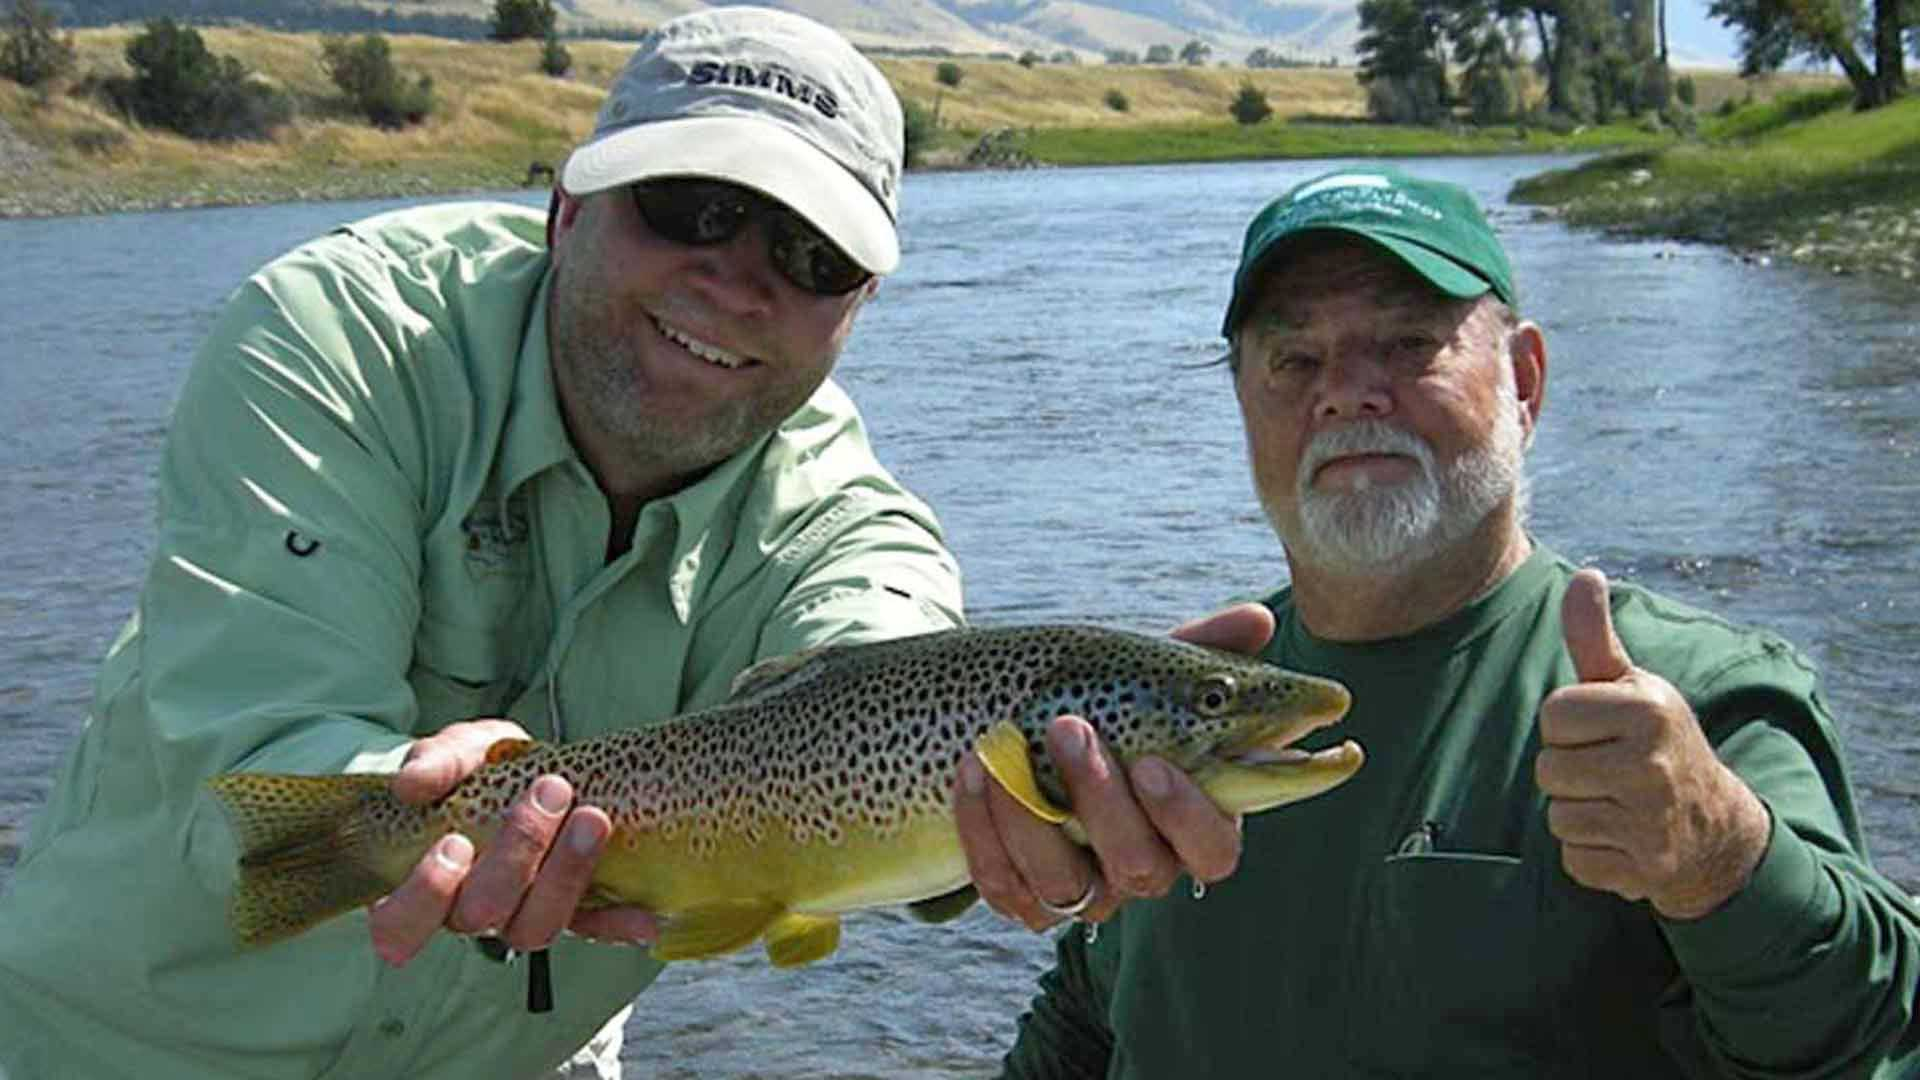 Fly fishing the Yellowstone